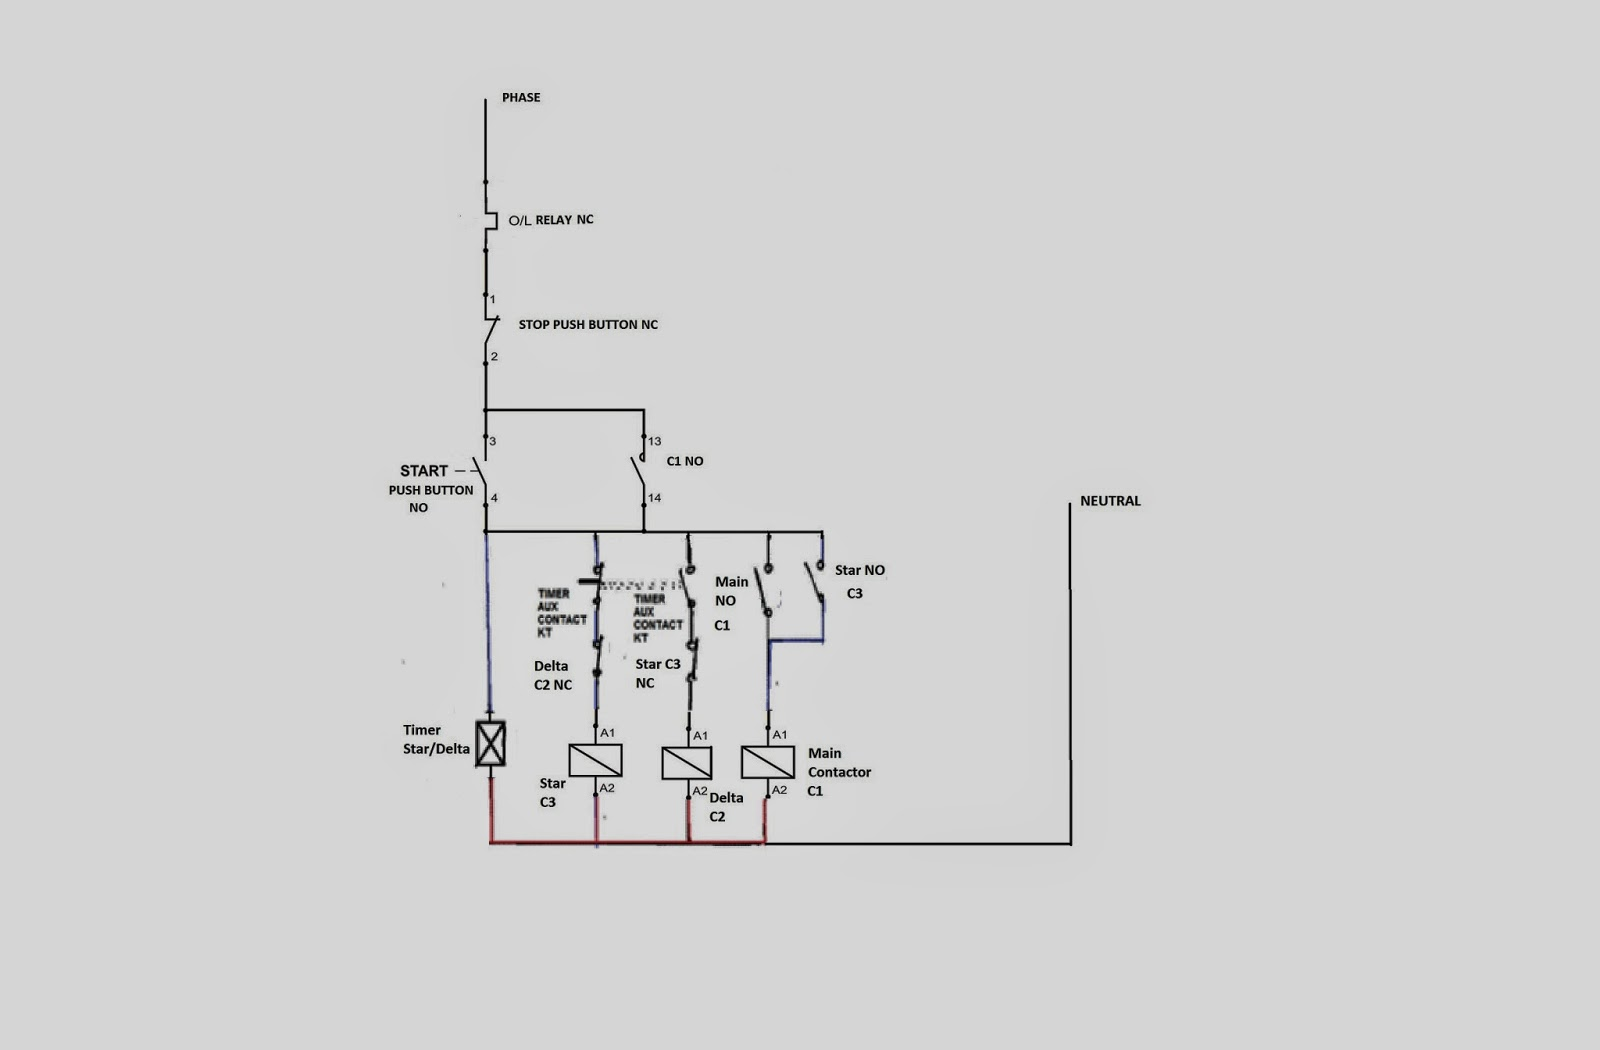 Sd Wiring Diagram | Wiring Diagram on 3 phase motor windings, 3 phase single line diagram, 3 phase water heater wiring diagram, 3 phase subpanel, basic electrical schematic diagrams, 3 phase motor schematic, 3 phase squirrel cage induction motor, 3 phase plug, 3 phase electrical meters, 3 phase motor repair, 3 phase motor troubleshooting guide, 3 phase outlet wiring diagram, 3 phase motor testing, 3 phase stepper, baldor ac motor diagrams, 3 phase to 1 phase wiring diagram, three-phase transformer banks diagrams, 3 phase motor starter, 3 phase motor speed controller, 3 phase to single phase wiring diagram,